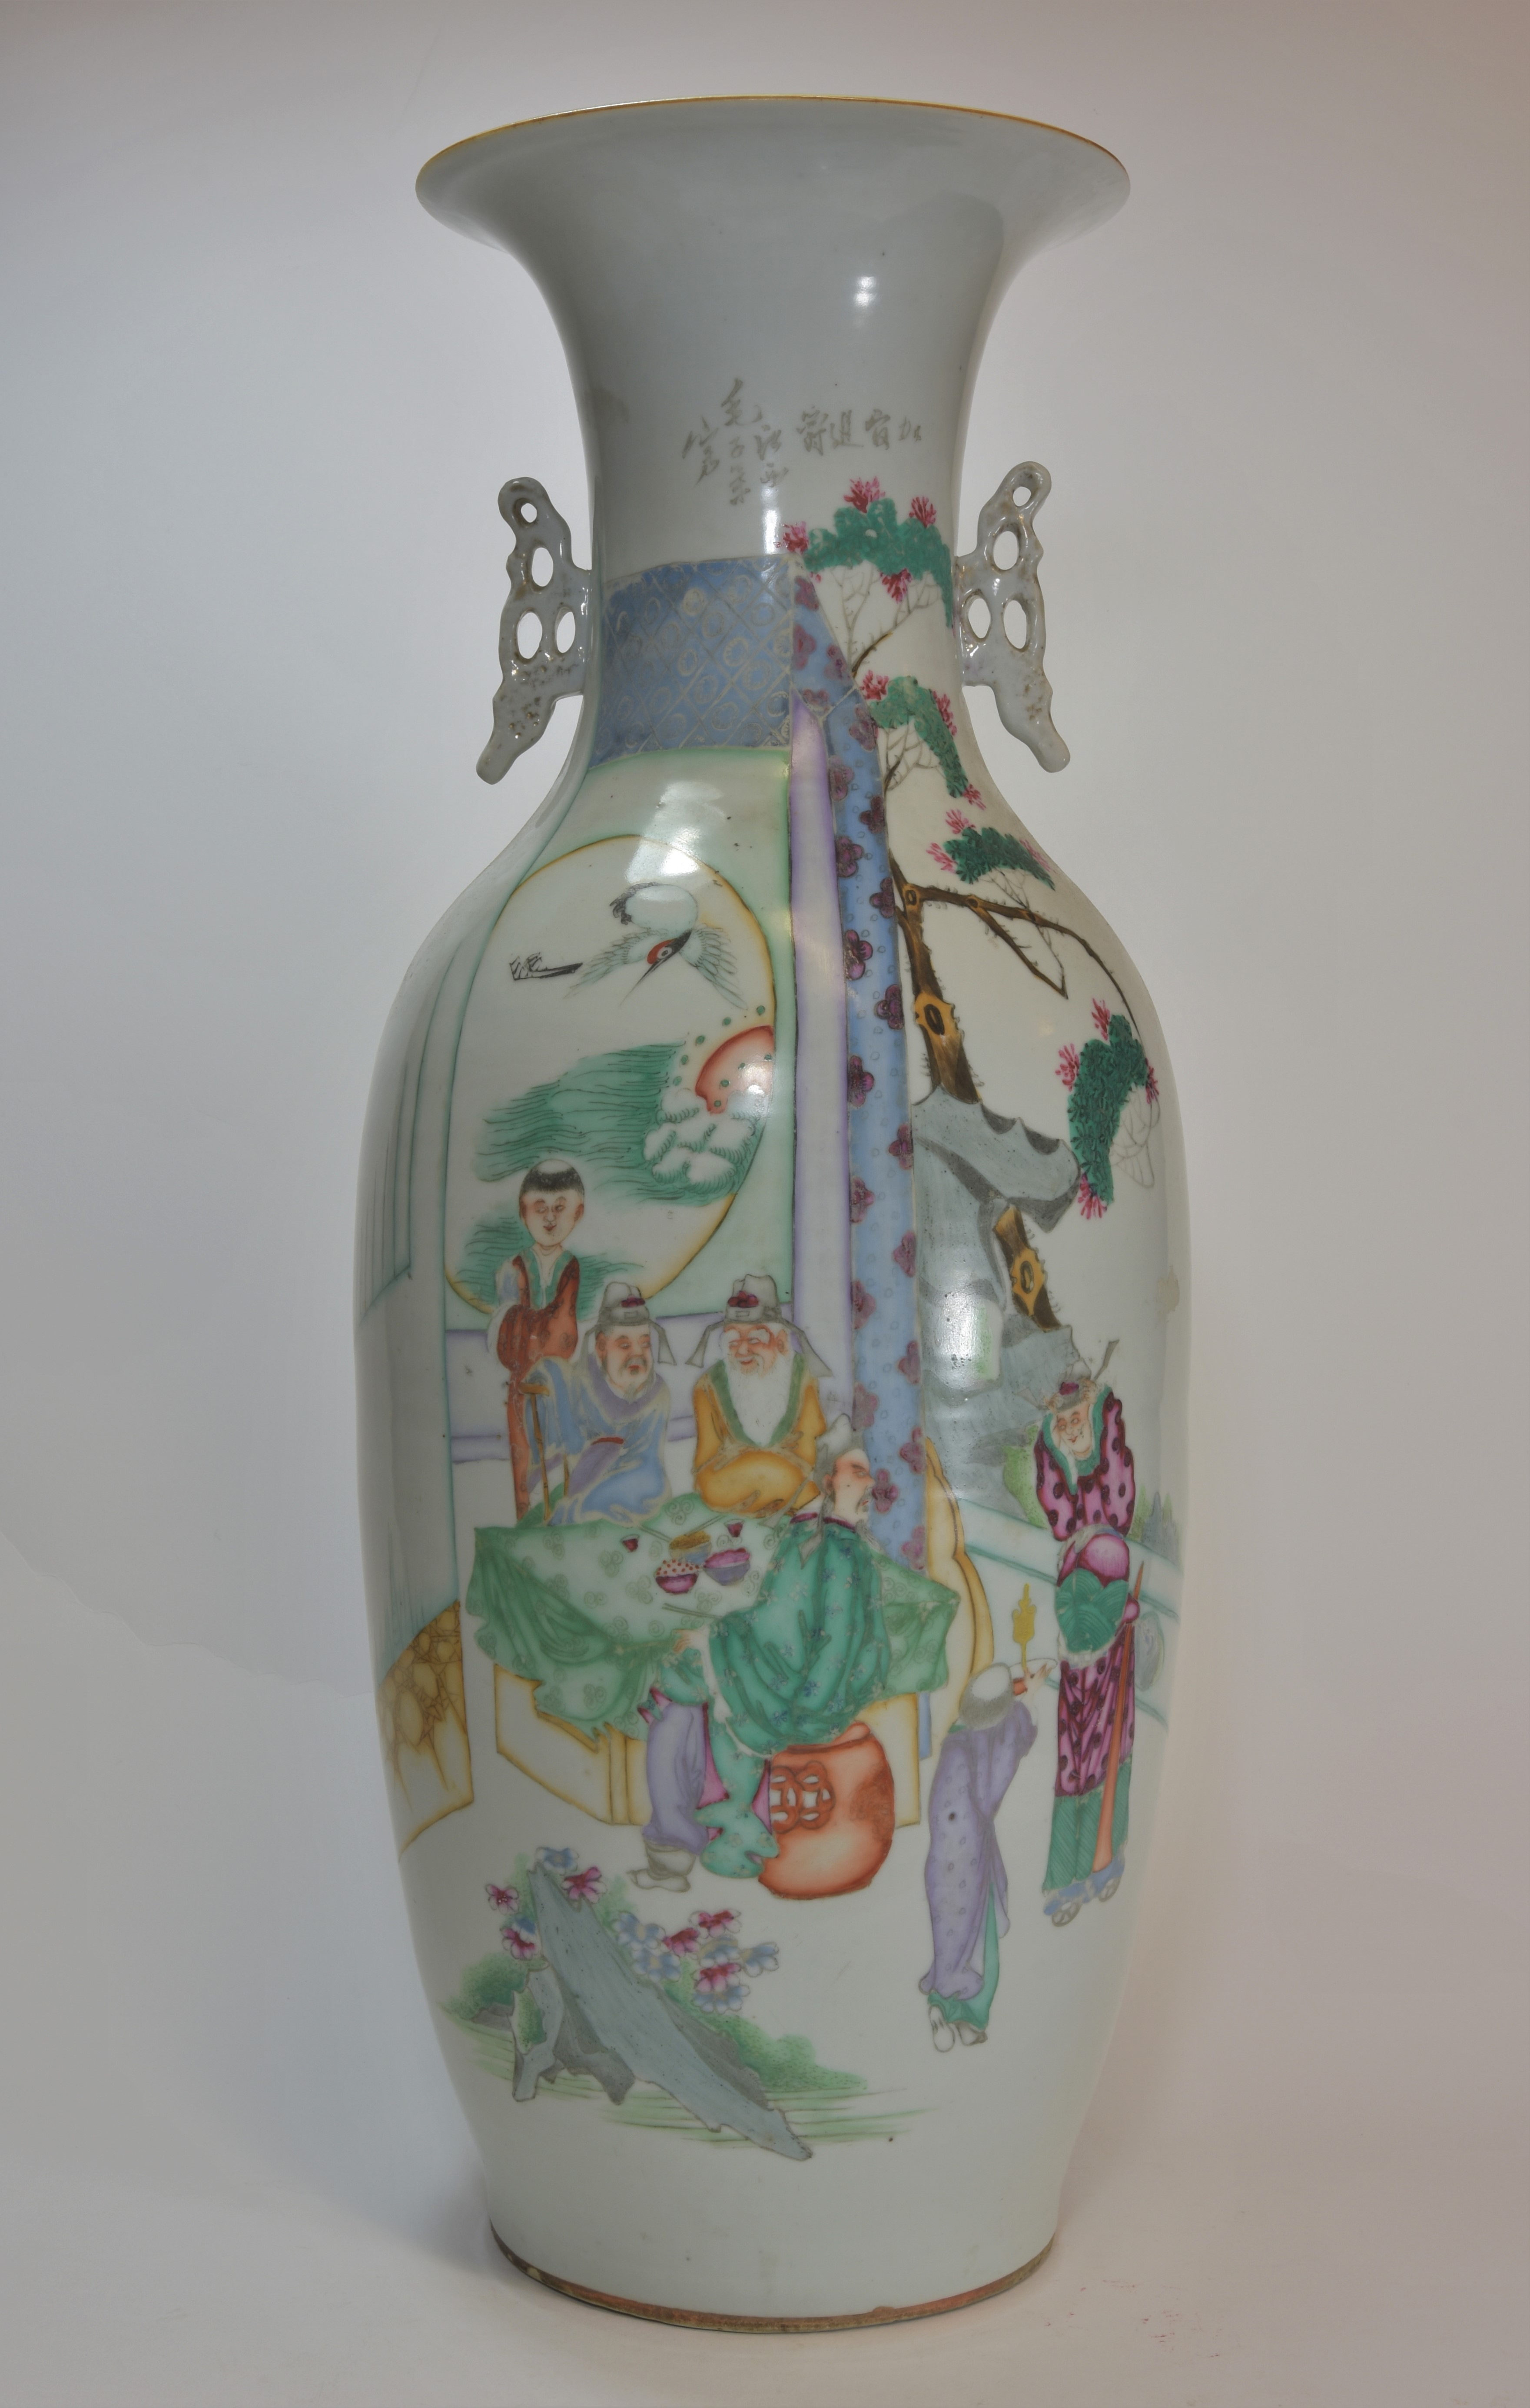 Lot 45 - An early 20th century Famille rose vase 59cm 文革時代 粉彩人物花瓶